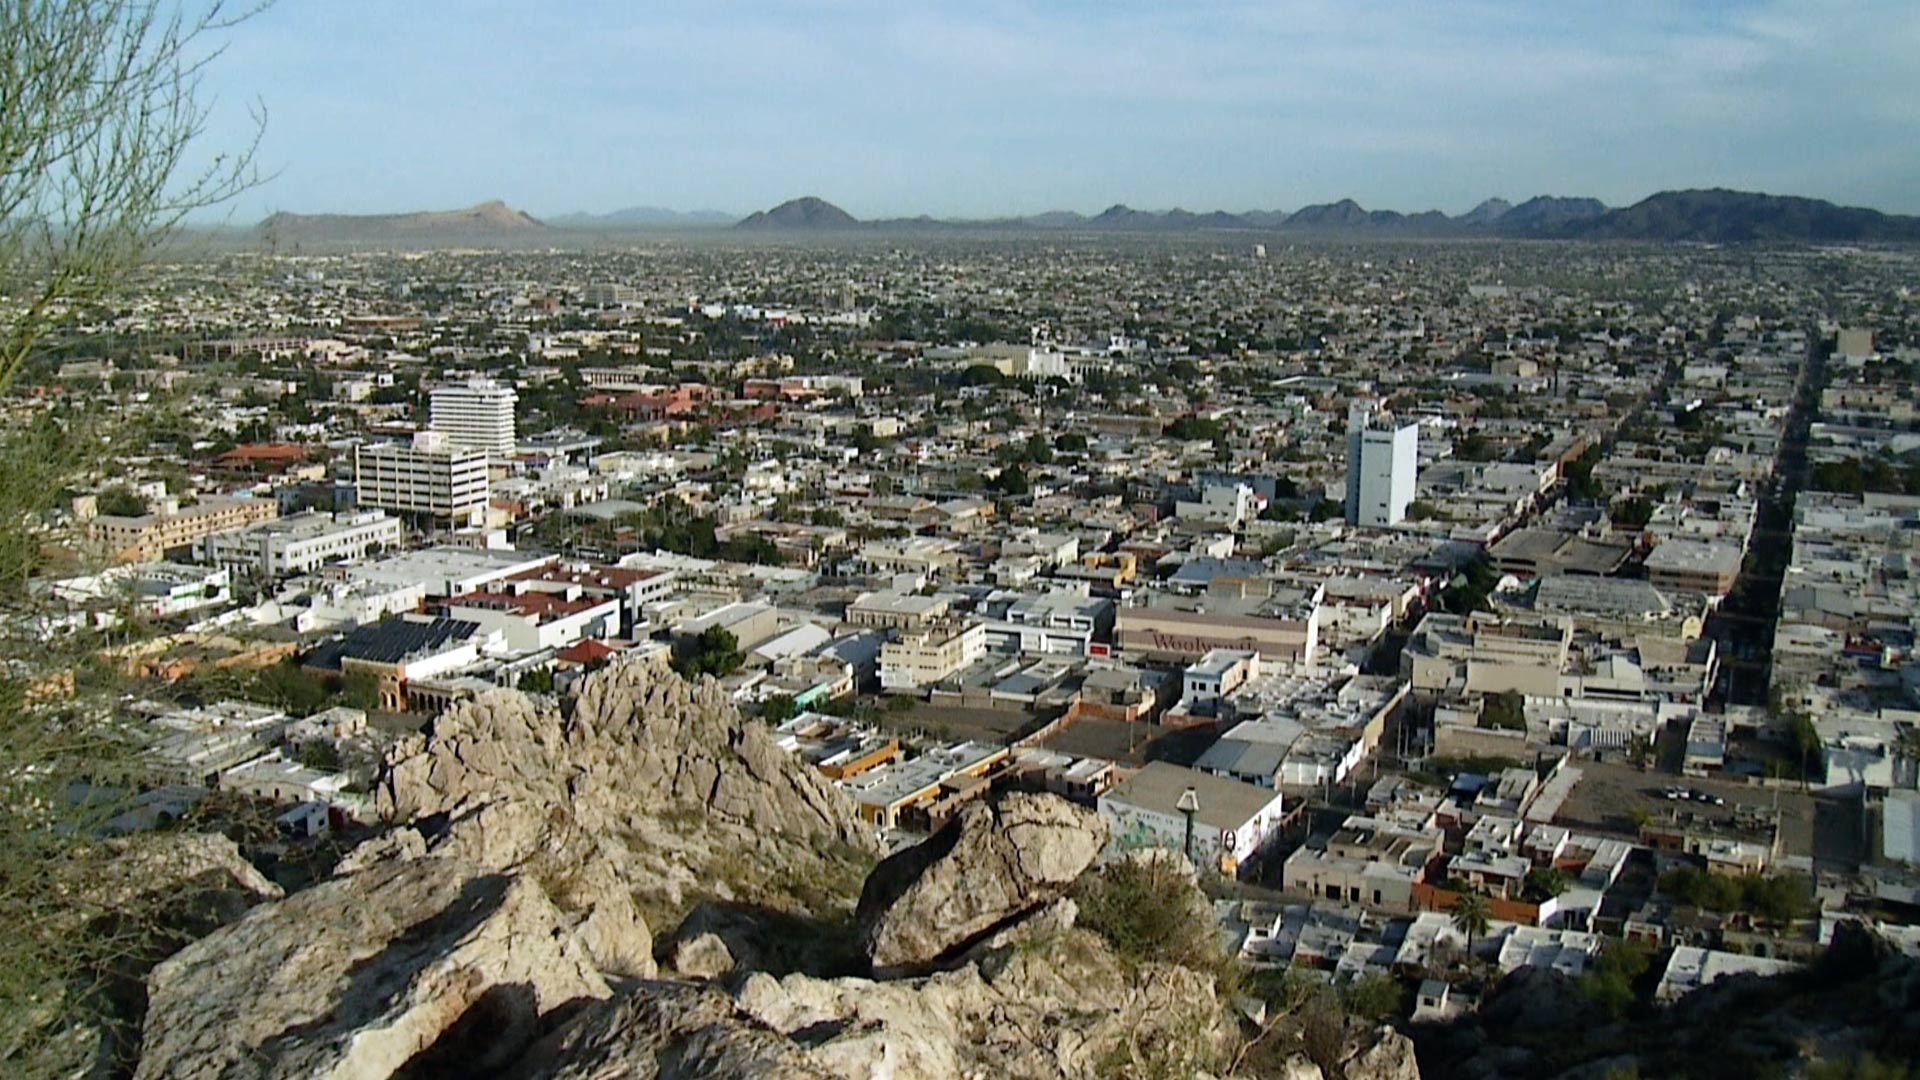 A view of Hermosillo, Sonora